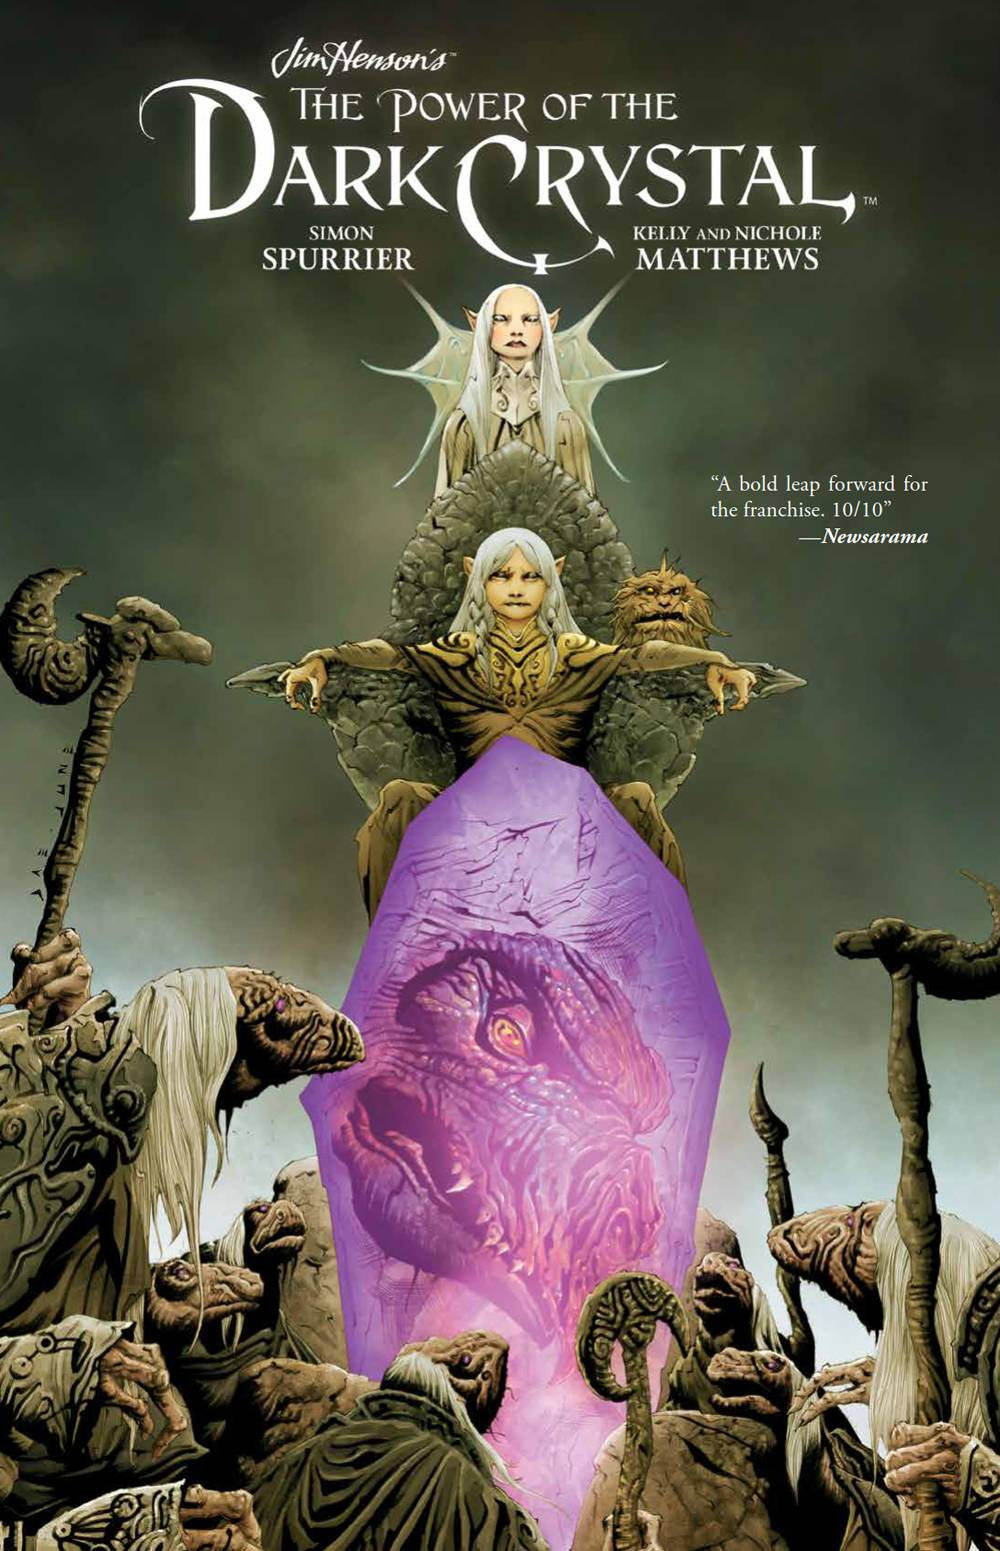 JIM HENSON POWER OF THE DARK CRYSTAL HC 1 of 4.jpg